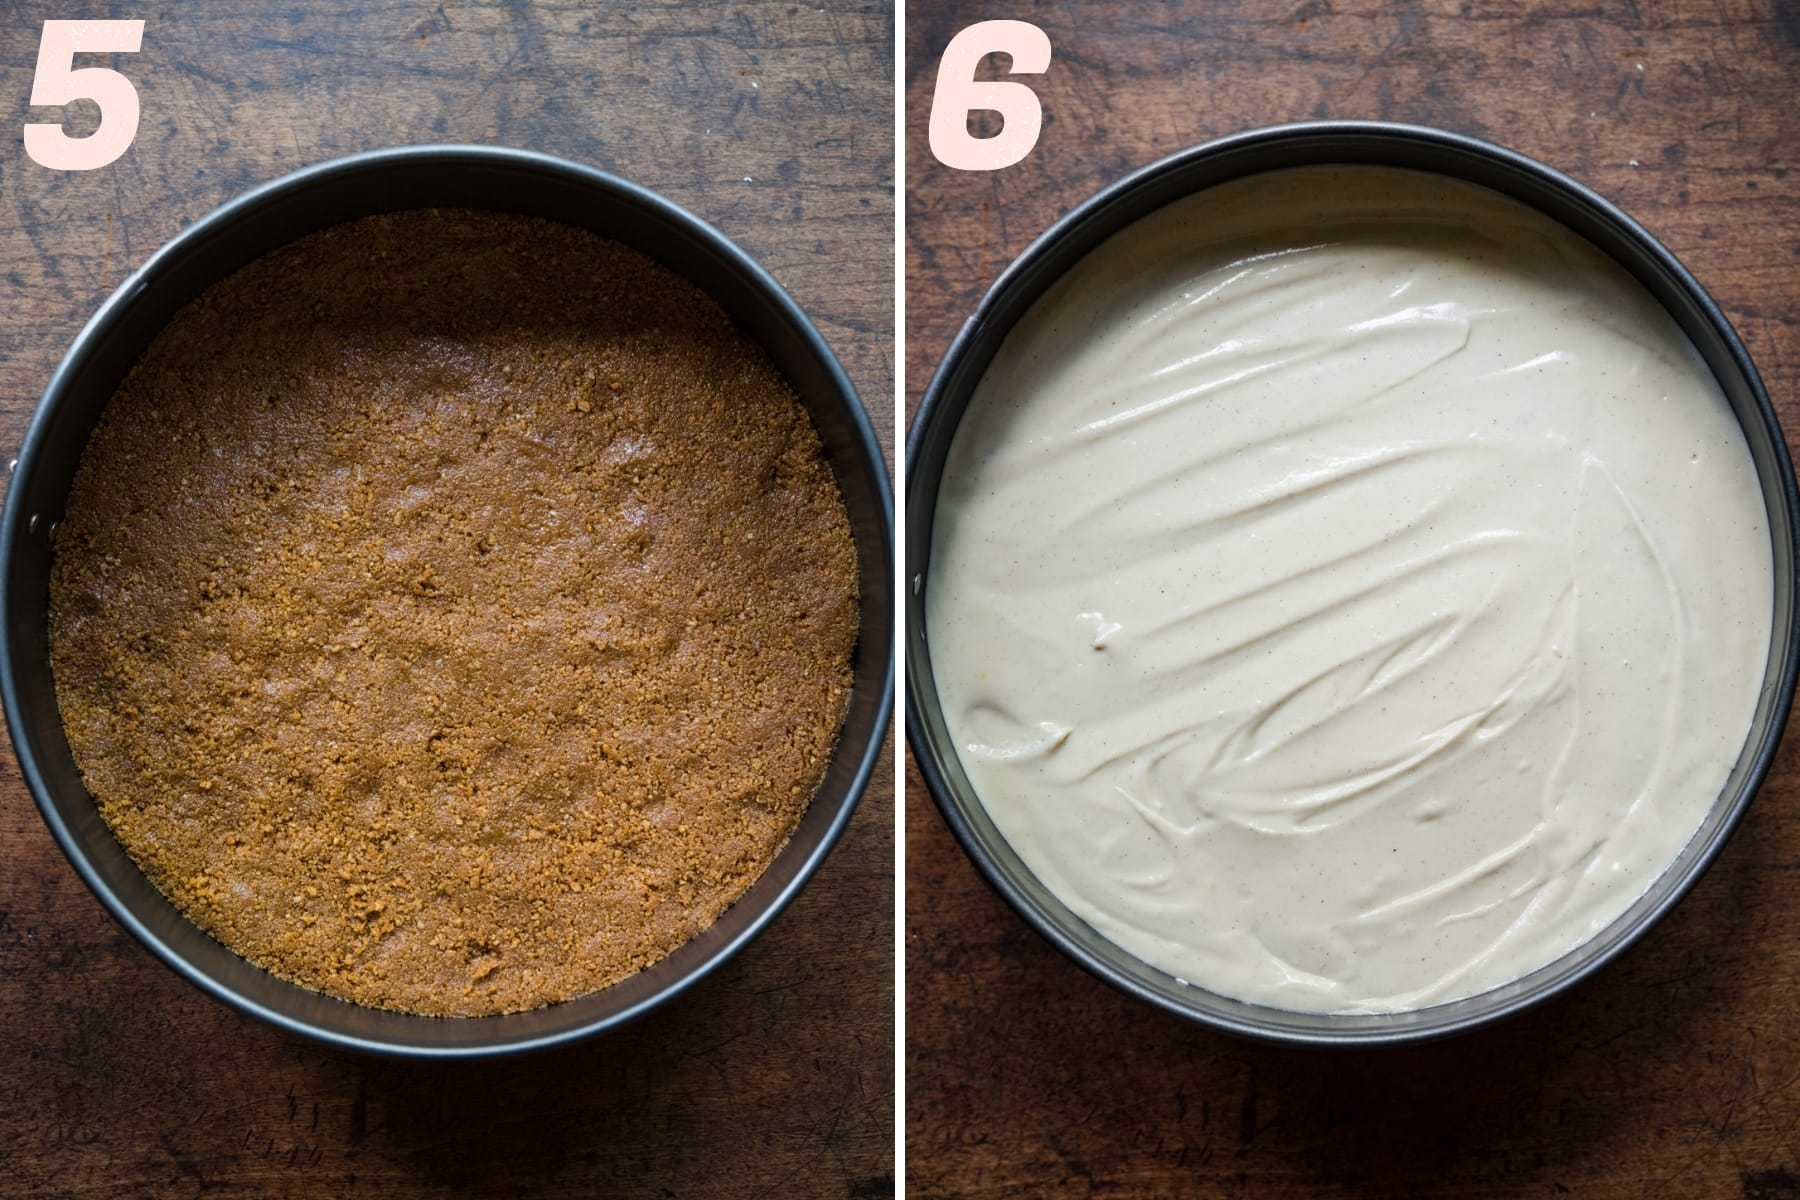 before and after adding vegan cheesecake filling to graham cracker crust.